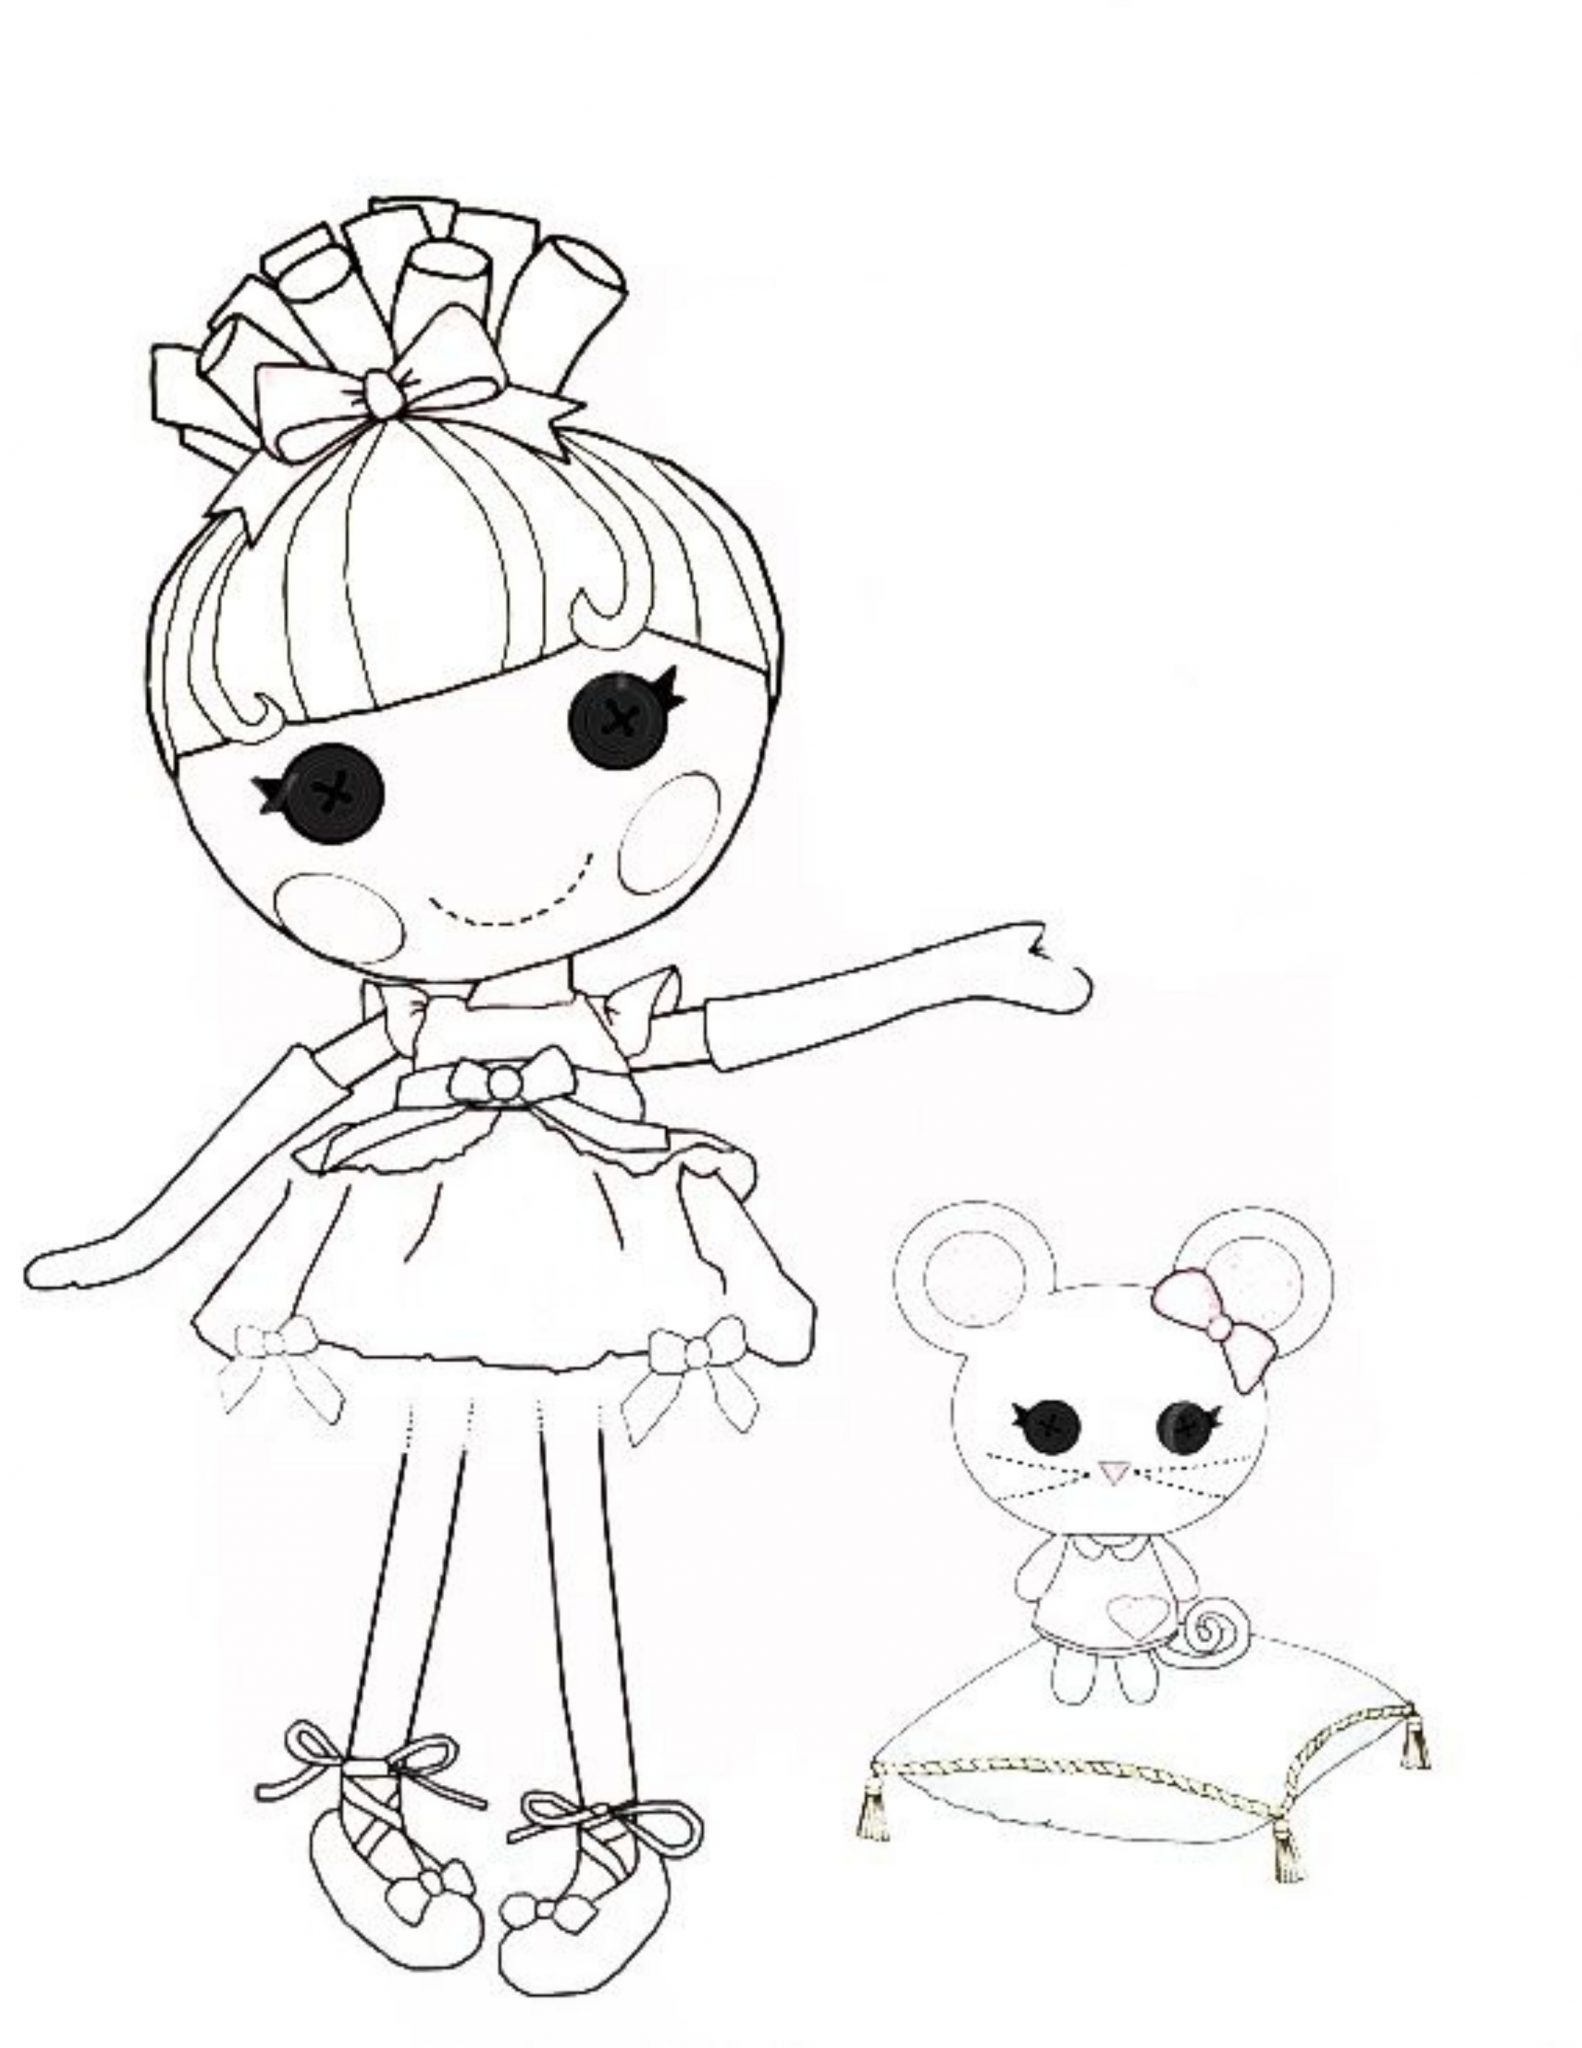 Top 20 Lalaloopsy Coloring Pages Your Toddler Will Love | Mermaid ... | 2048x1582